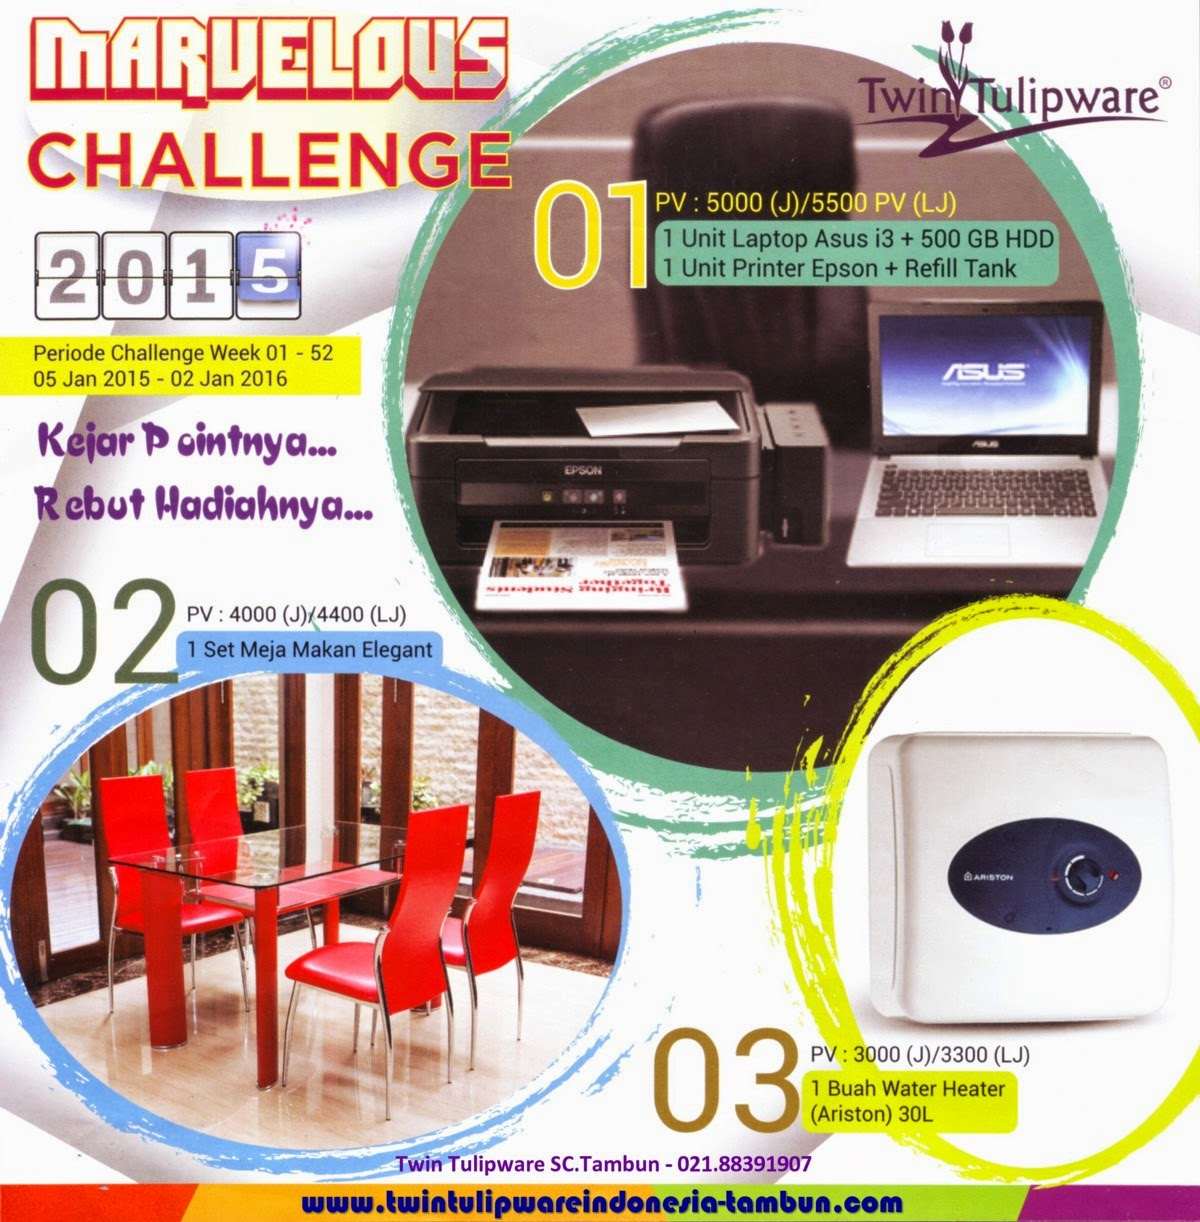 Marvelous Challenge Twin Tulipware 2015, Laptop ASUS, Printer Epson Refill Tank, Meja Makan Elegant, Water Heater Ariston